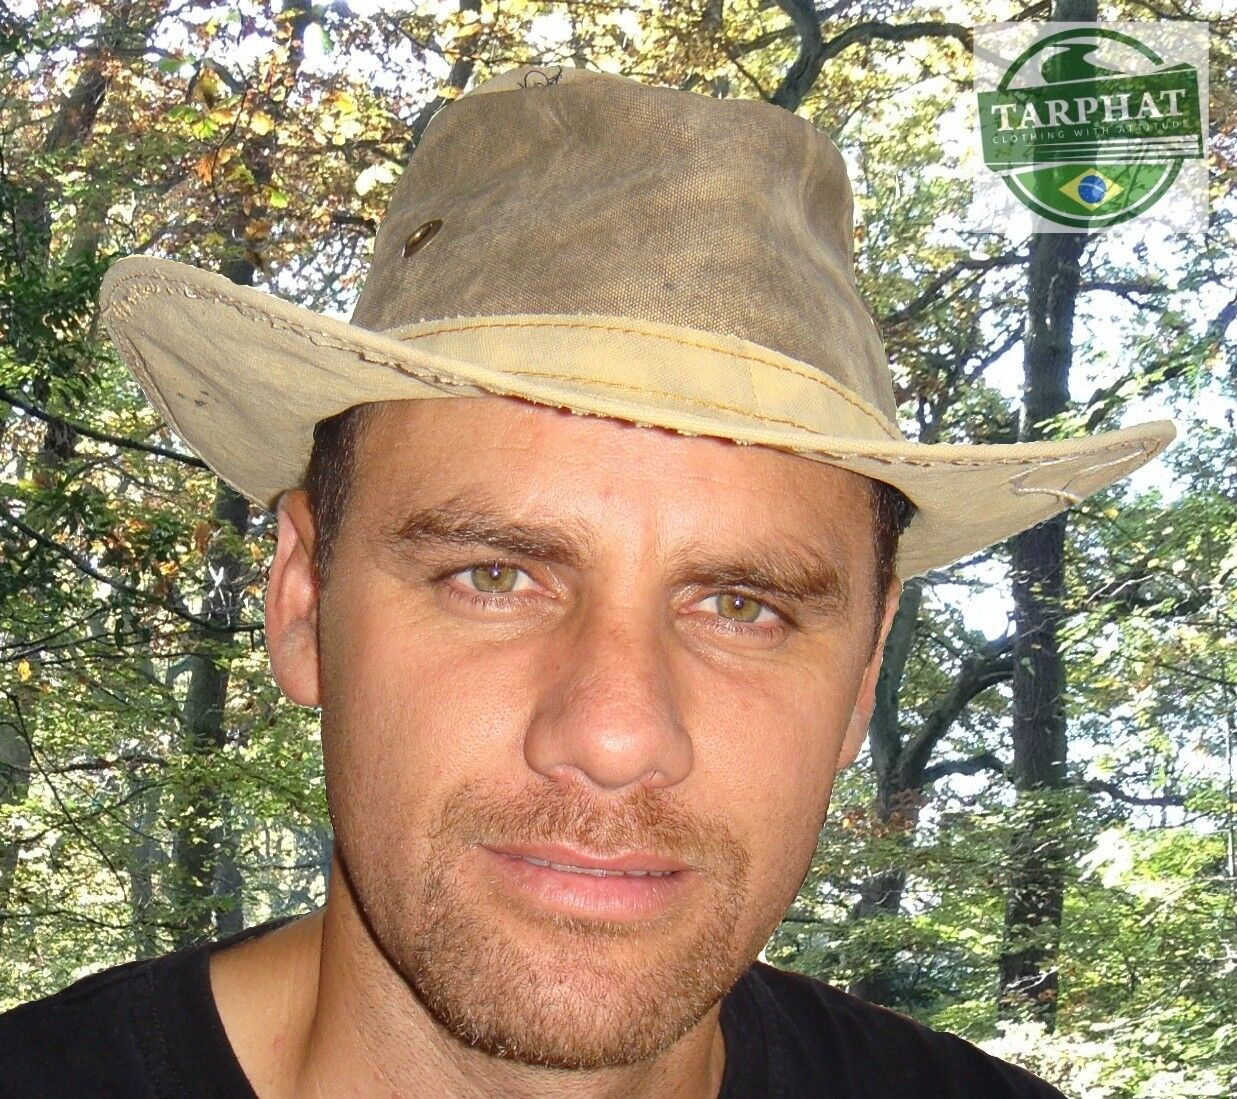 Geoca ng Hat-Tully wide brim Walking Bush Hat  - Brazil Tarp Hats - 6 Sizes     there are more brands of high-quality goods